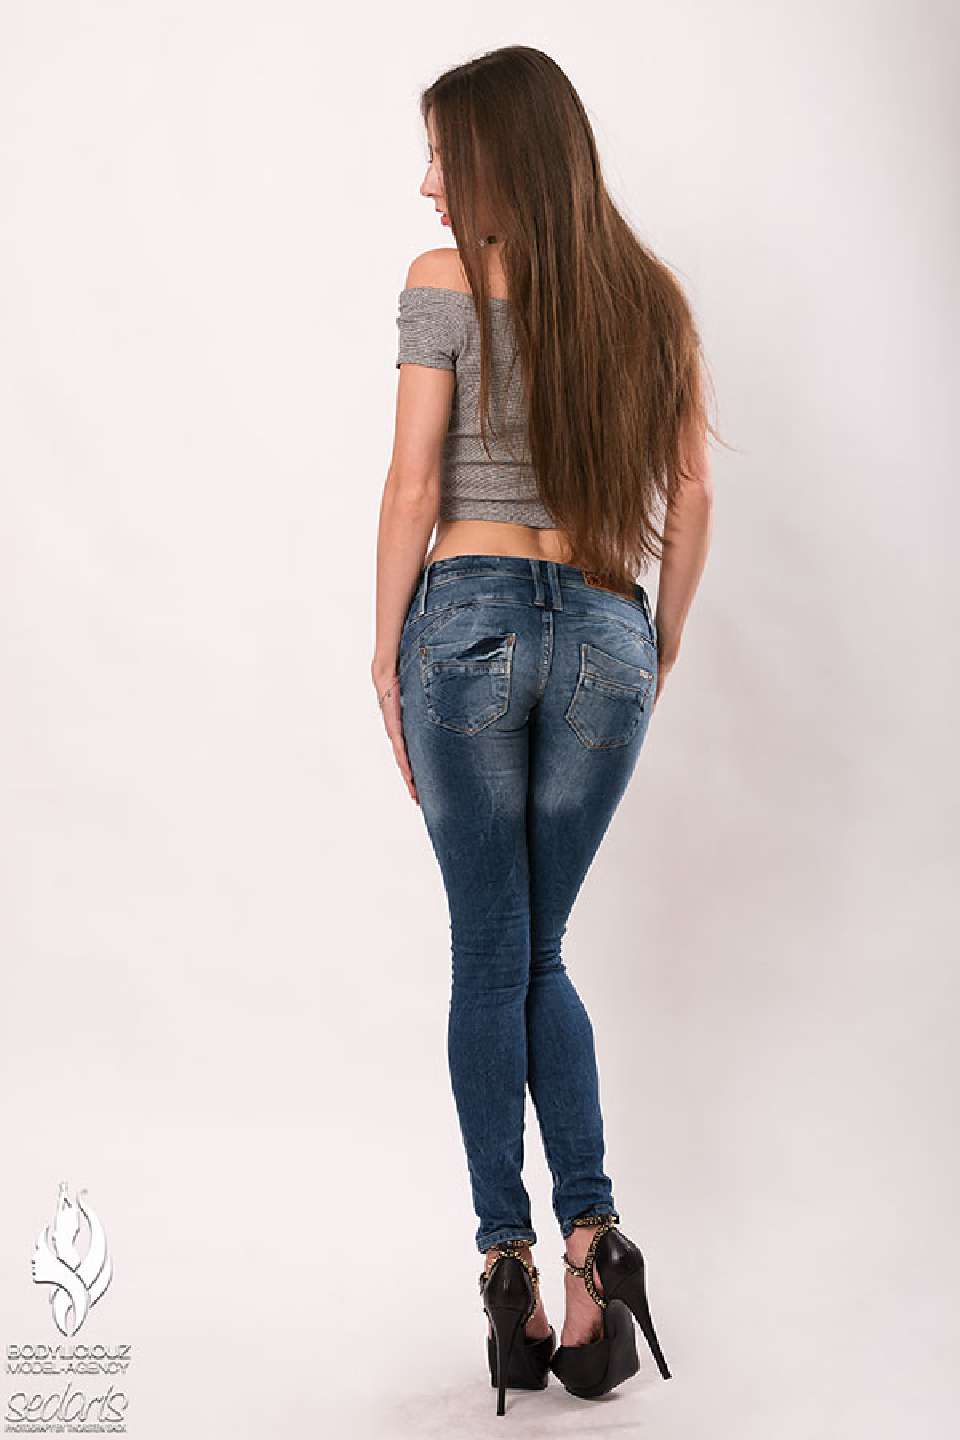 Model Simi Studio Collection Shooting for Lost in Paradise Jeans with Sedarts